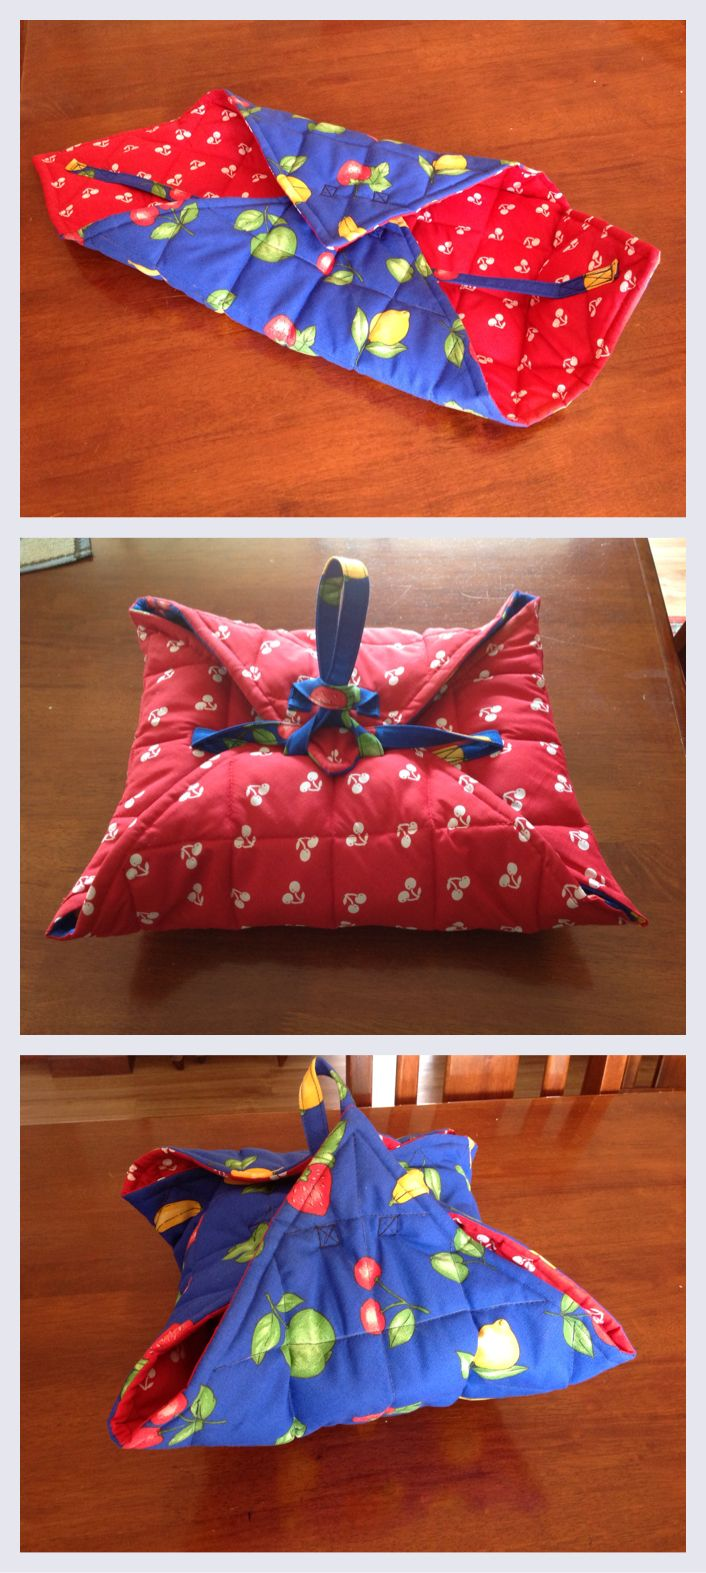 Second sewing project complete! Reversible casserole carrier